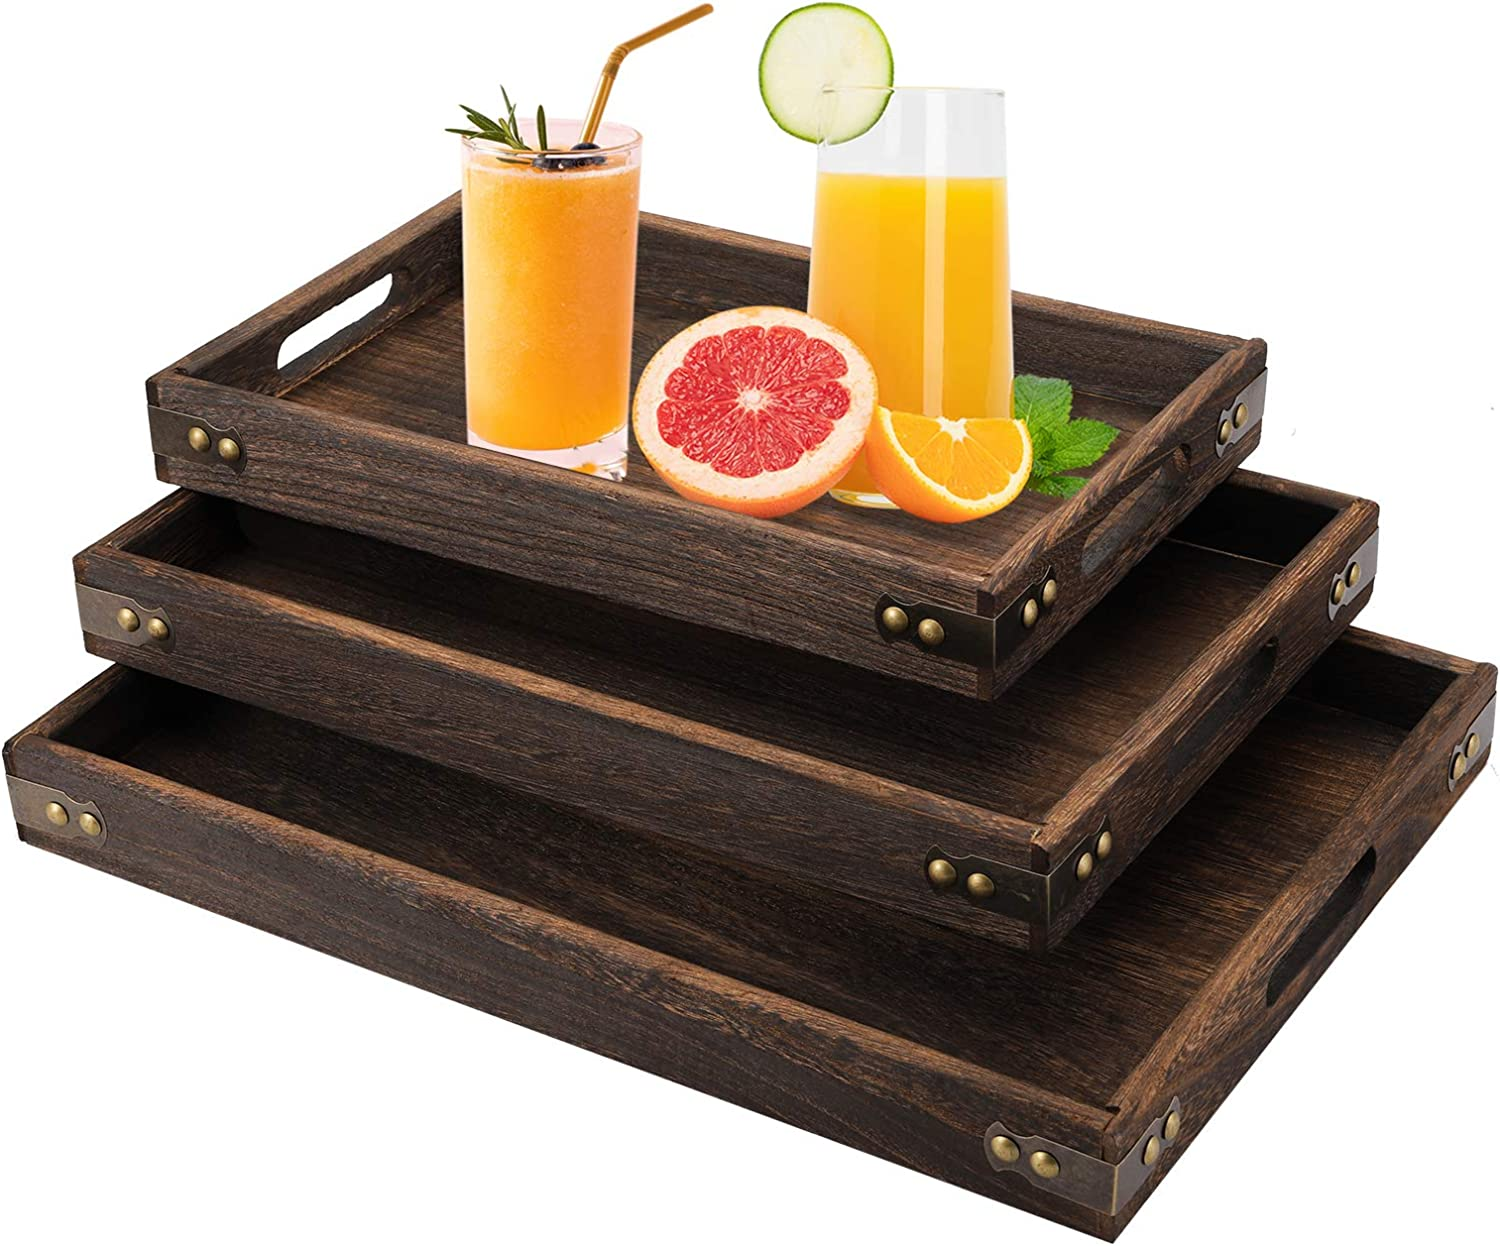 TOPZEA 3 Pack Wood Serving Tray, Rectangle Service Trays with Handles, Wooden Food Serving Tray for Breakfast, Dinner, Tea, Coffee, Fruits, Bar, Parties, Natural